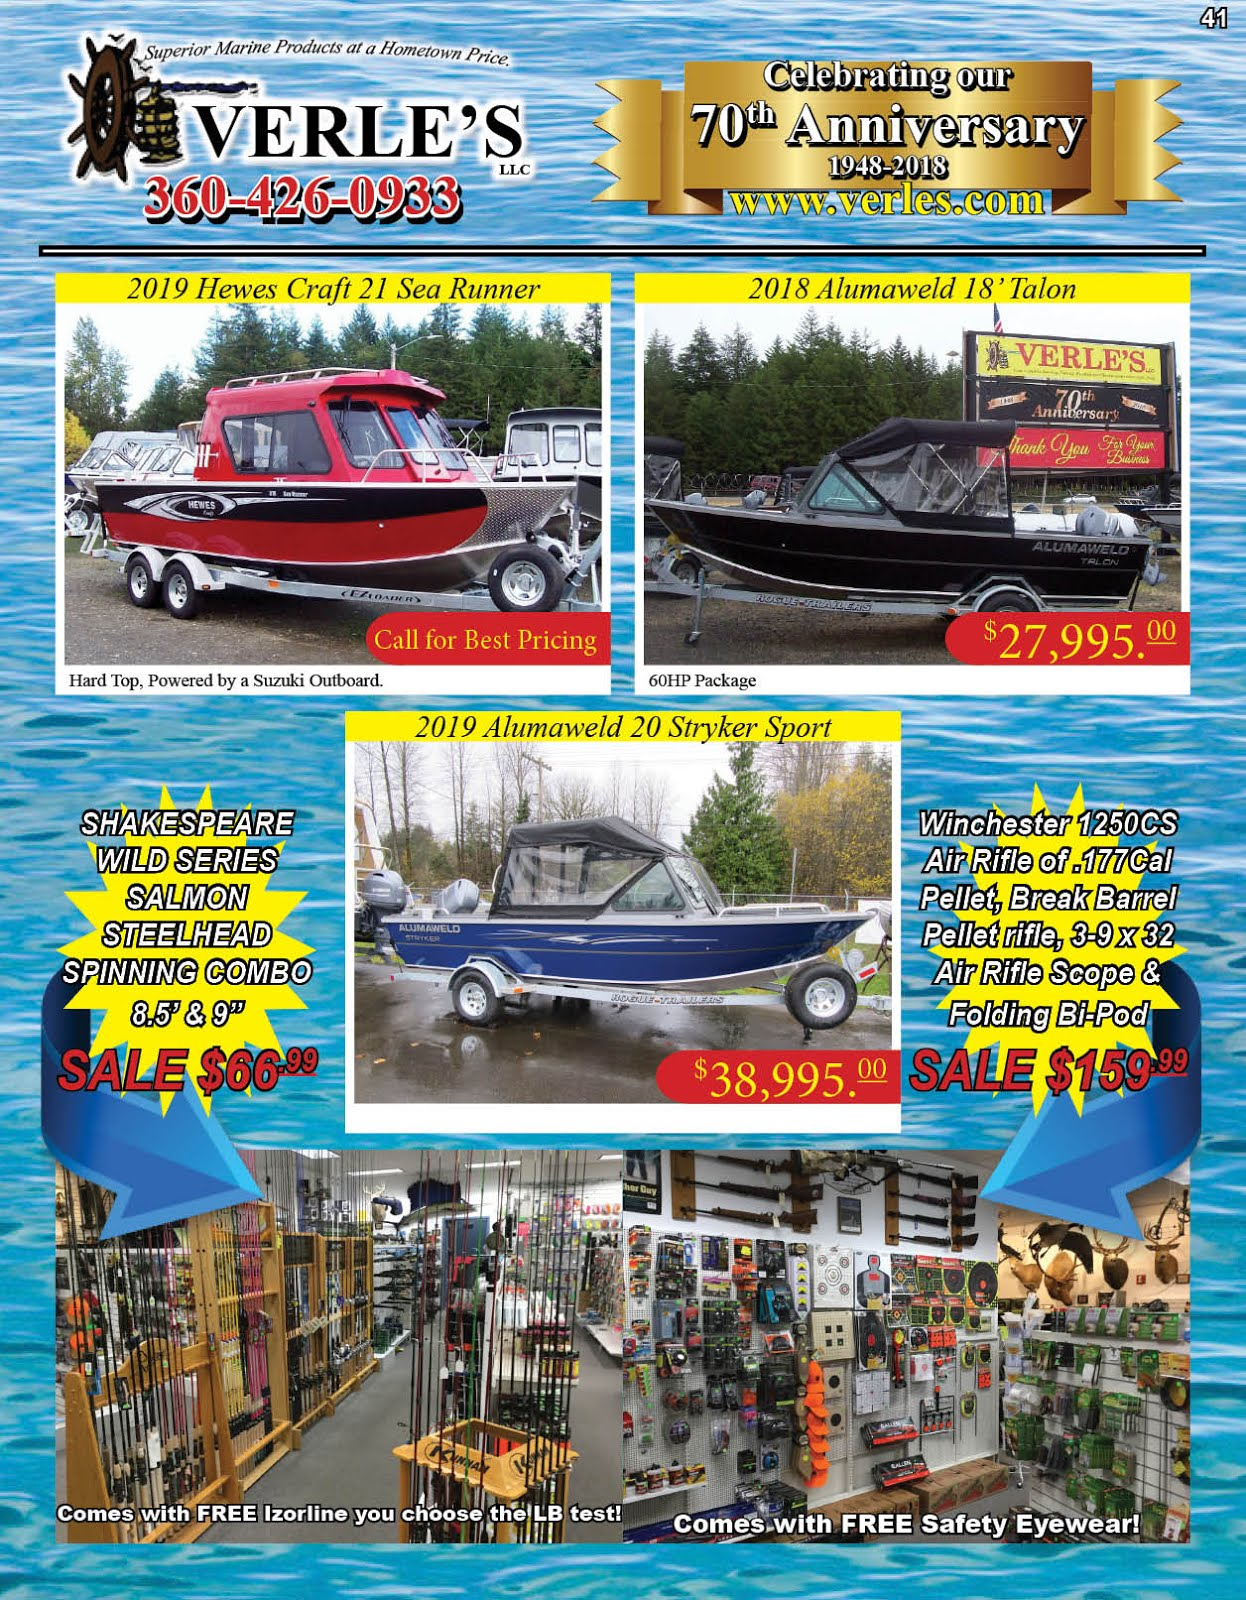 Verles 70th Anniversary!! Specials On Boats Marine Gear Tackle Guns Ammo!!